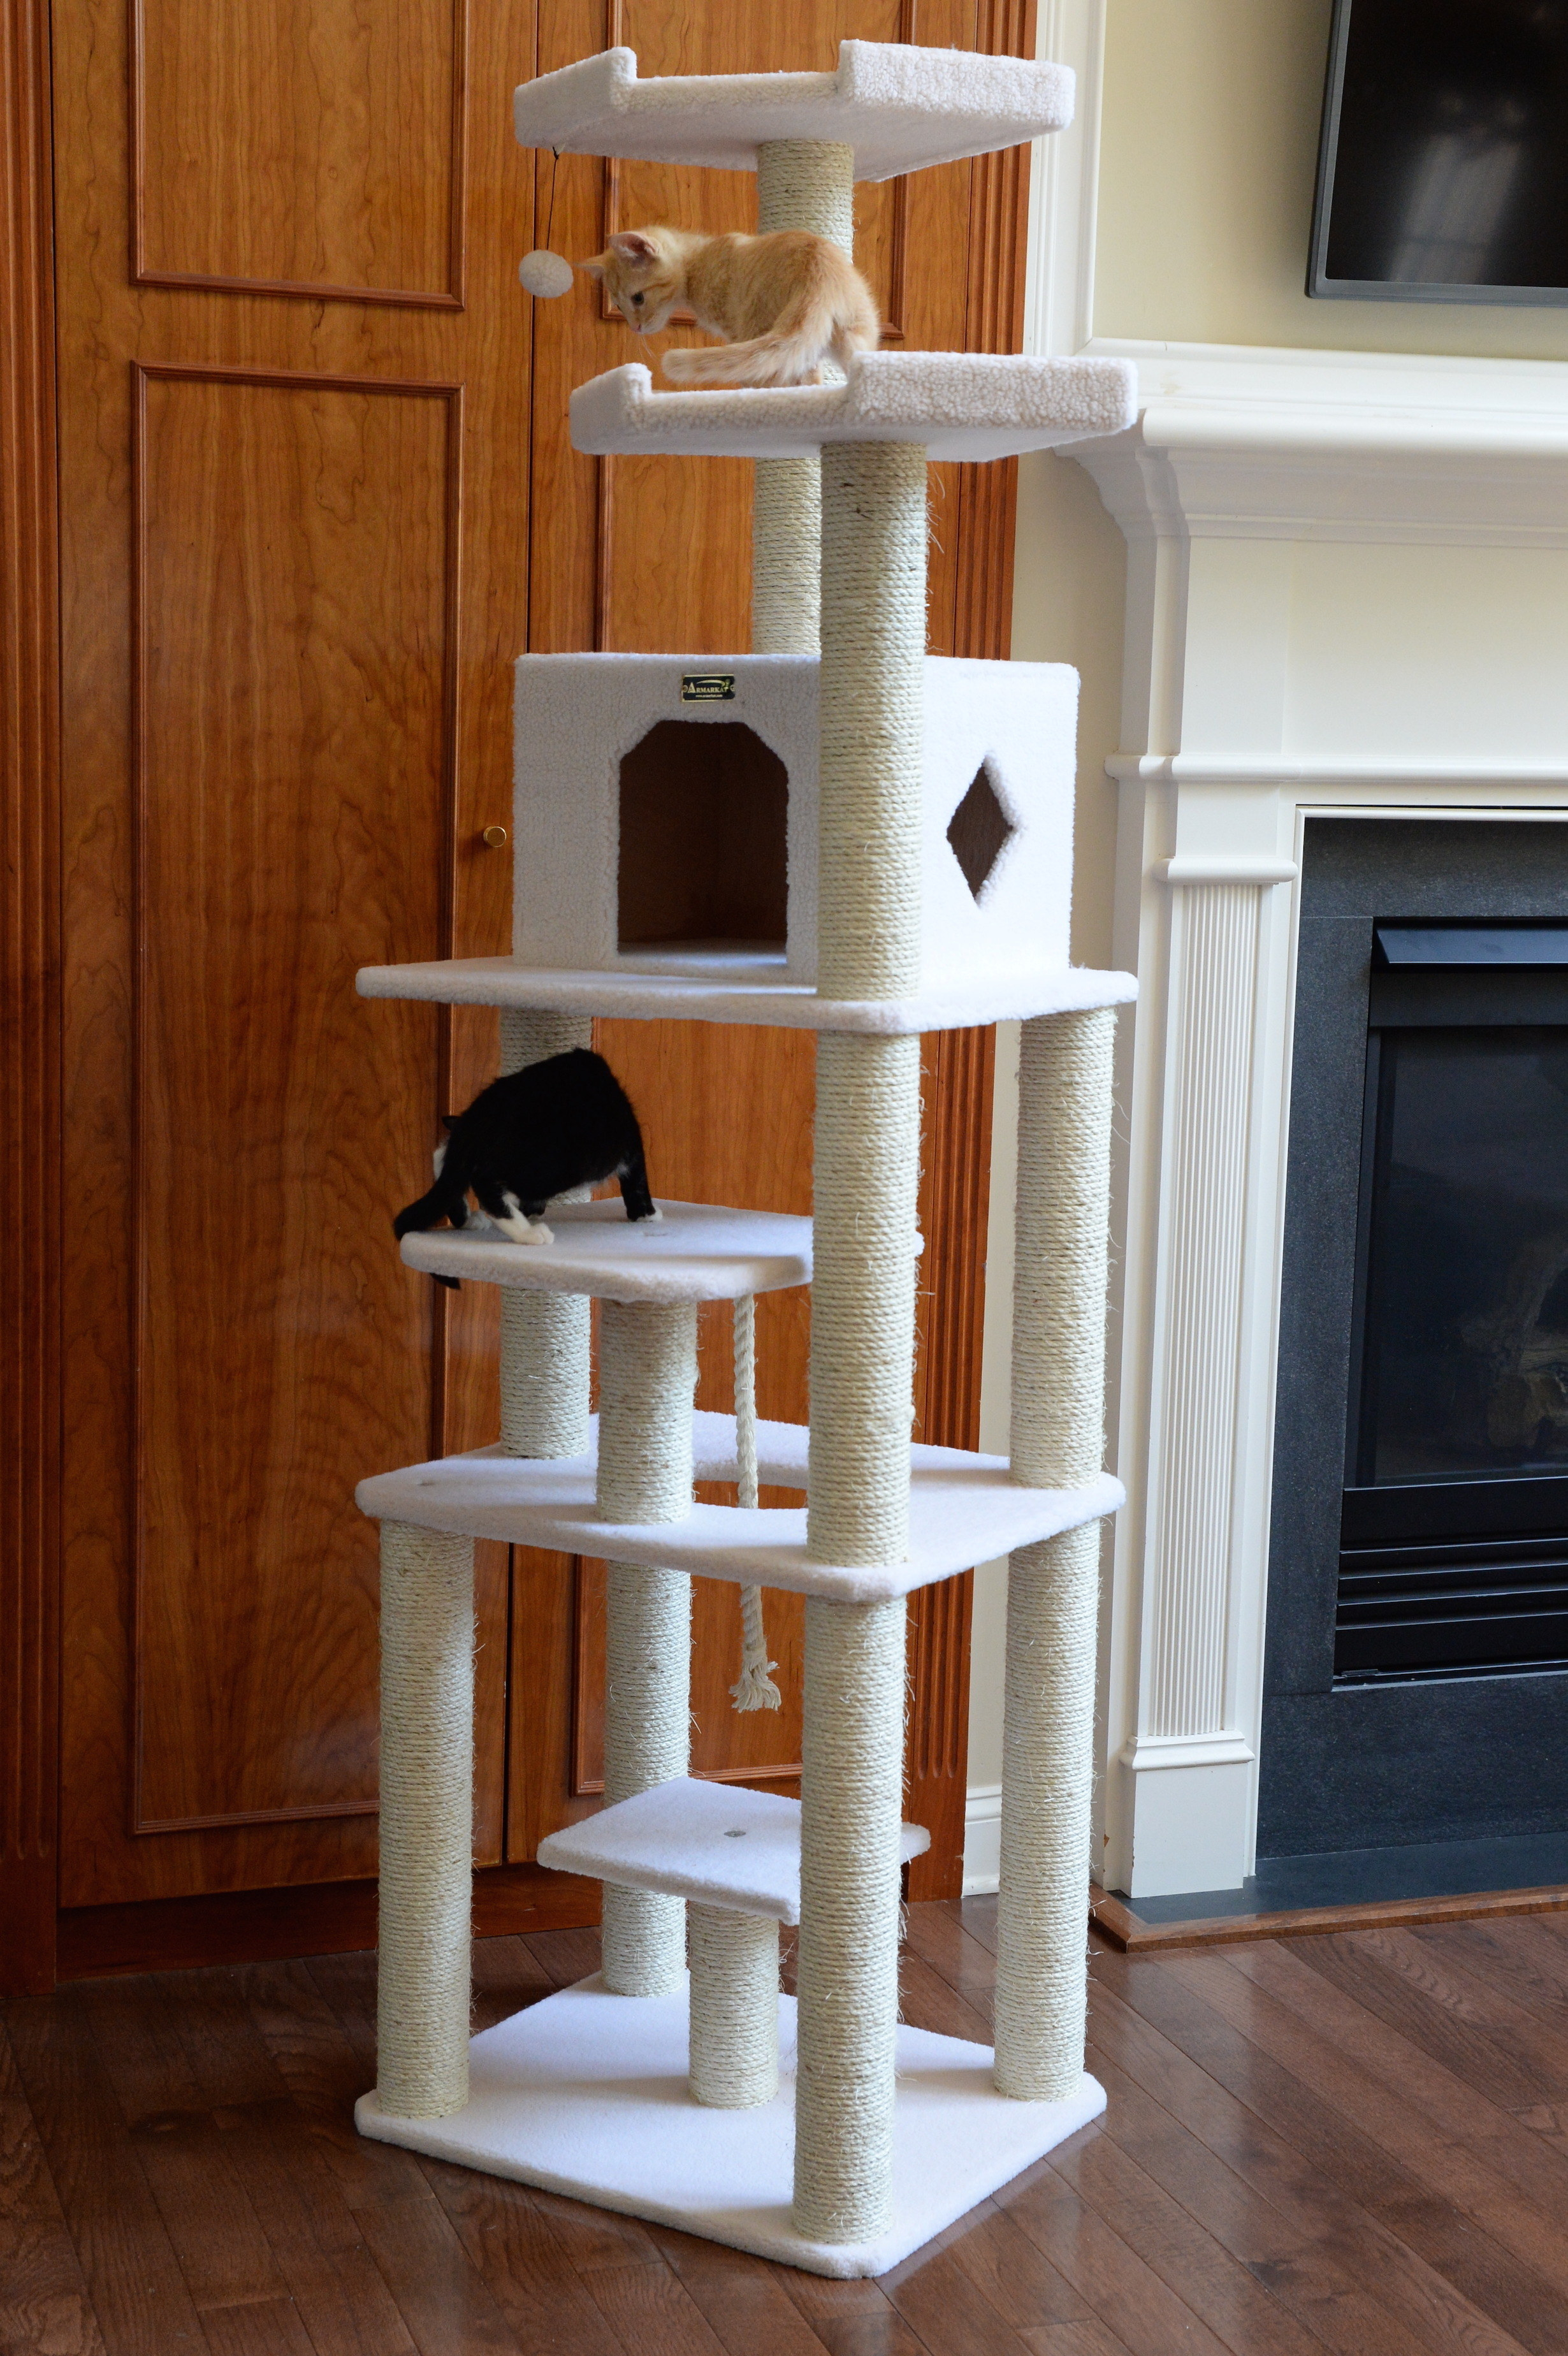 Two cats resting on the scratching condo